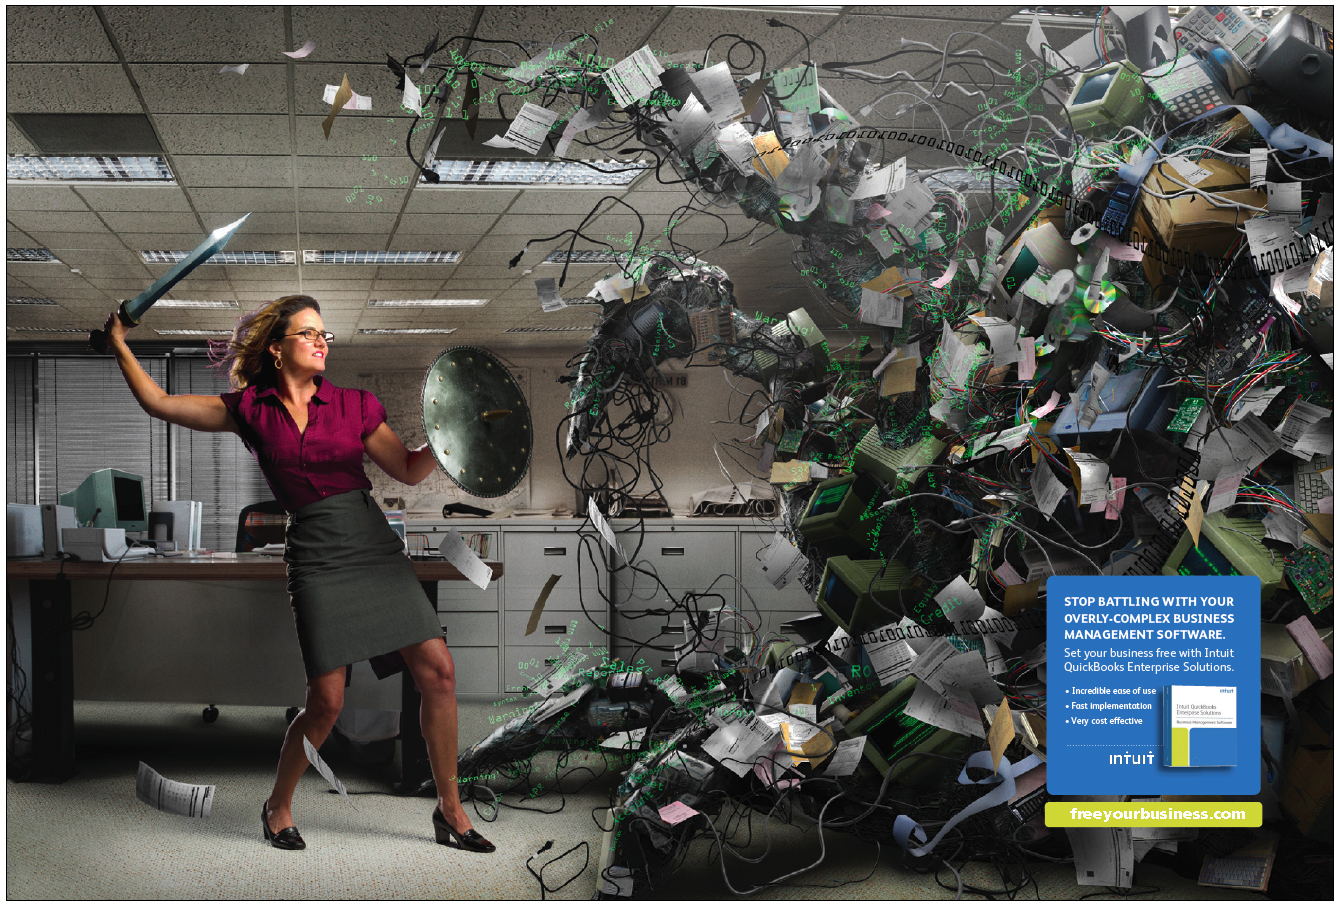 Double page spread print ad for Intuit Enterprise Solutions.